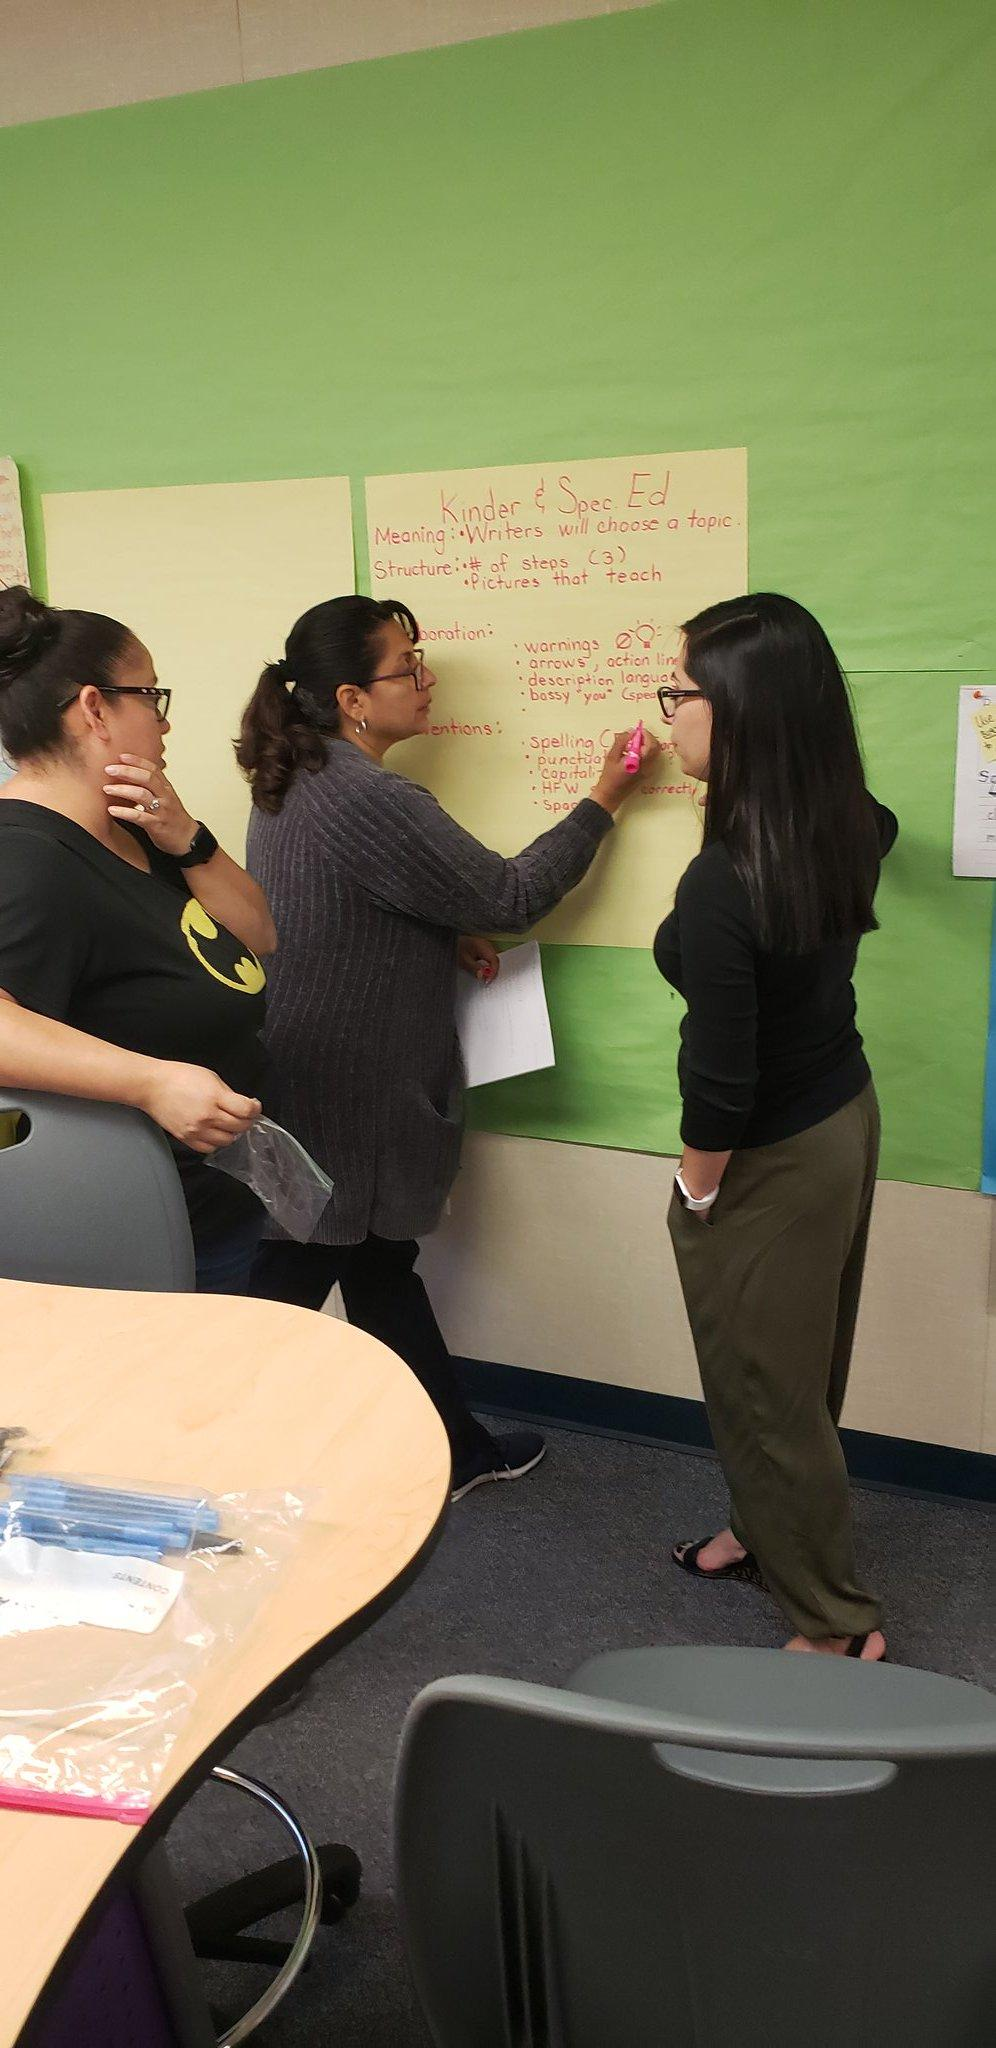 teachers brainstorming during meeting